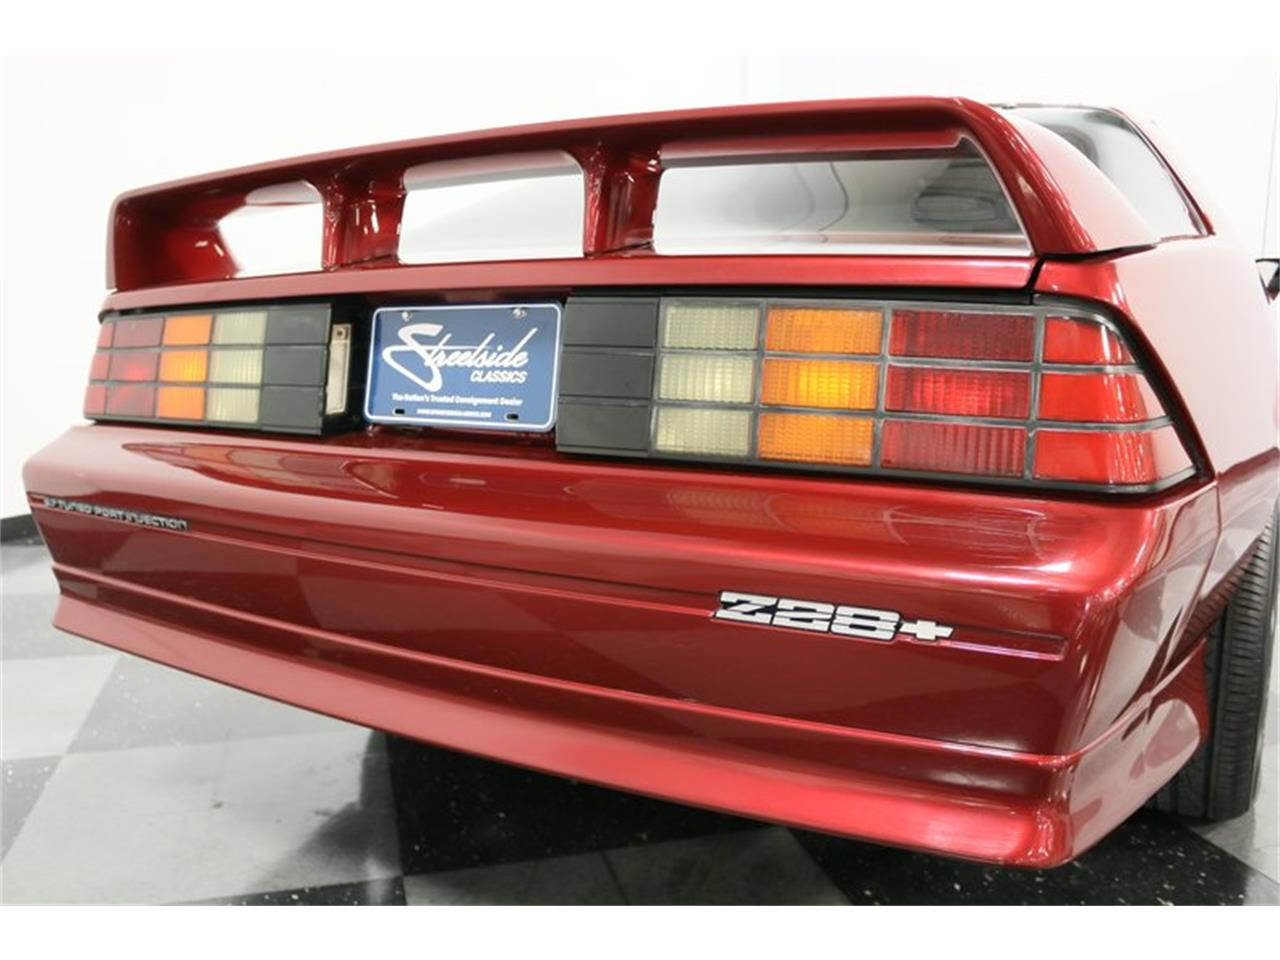 Large Picture of 1991 Camaro located in Ft Worth Texas Offered by Streetside Classics - Dallas / Fort Worth - PBLJ